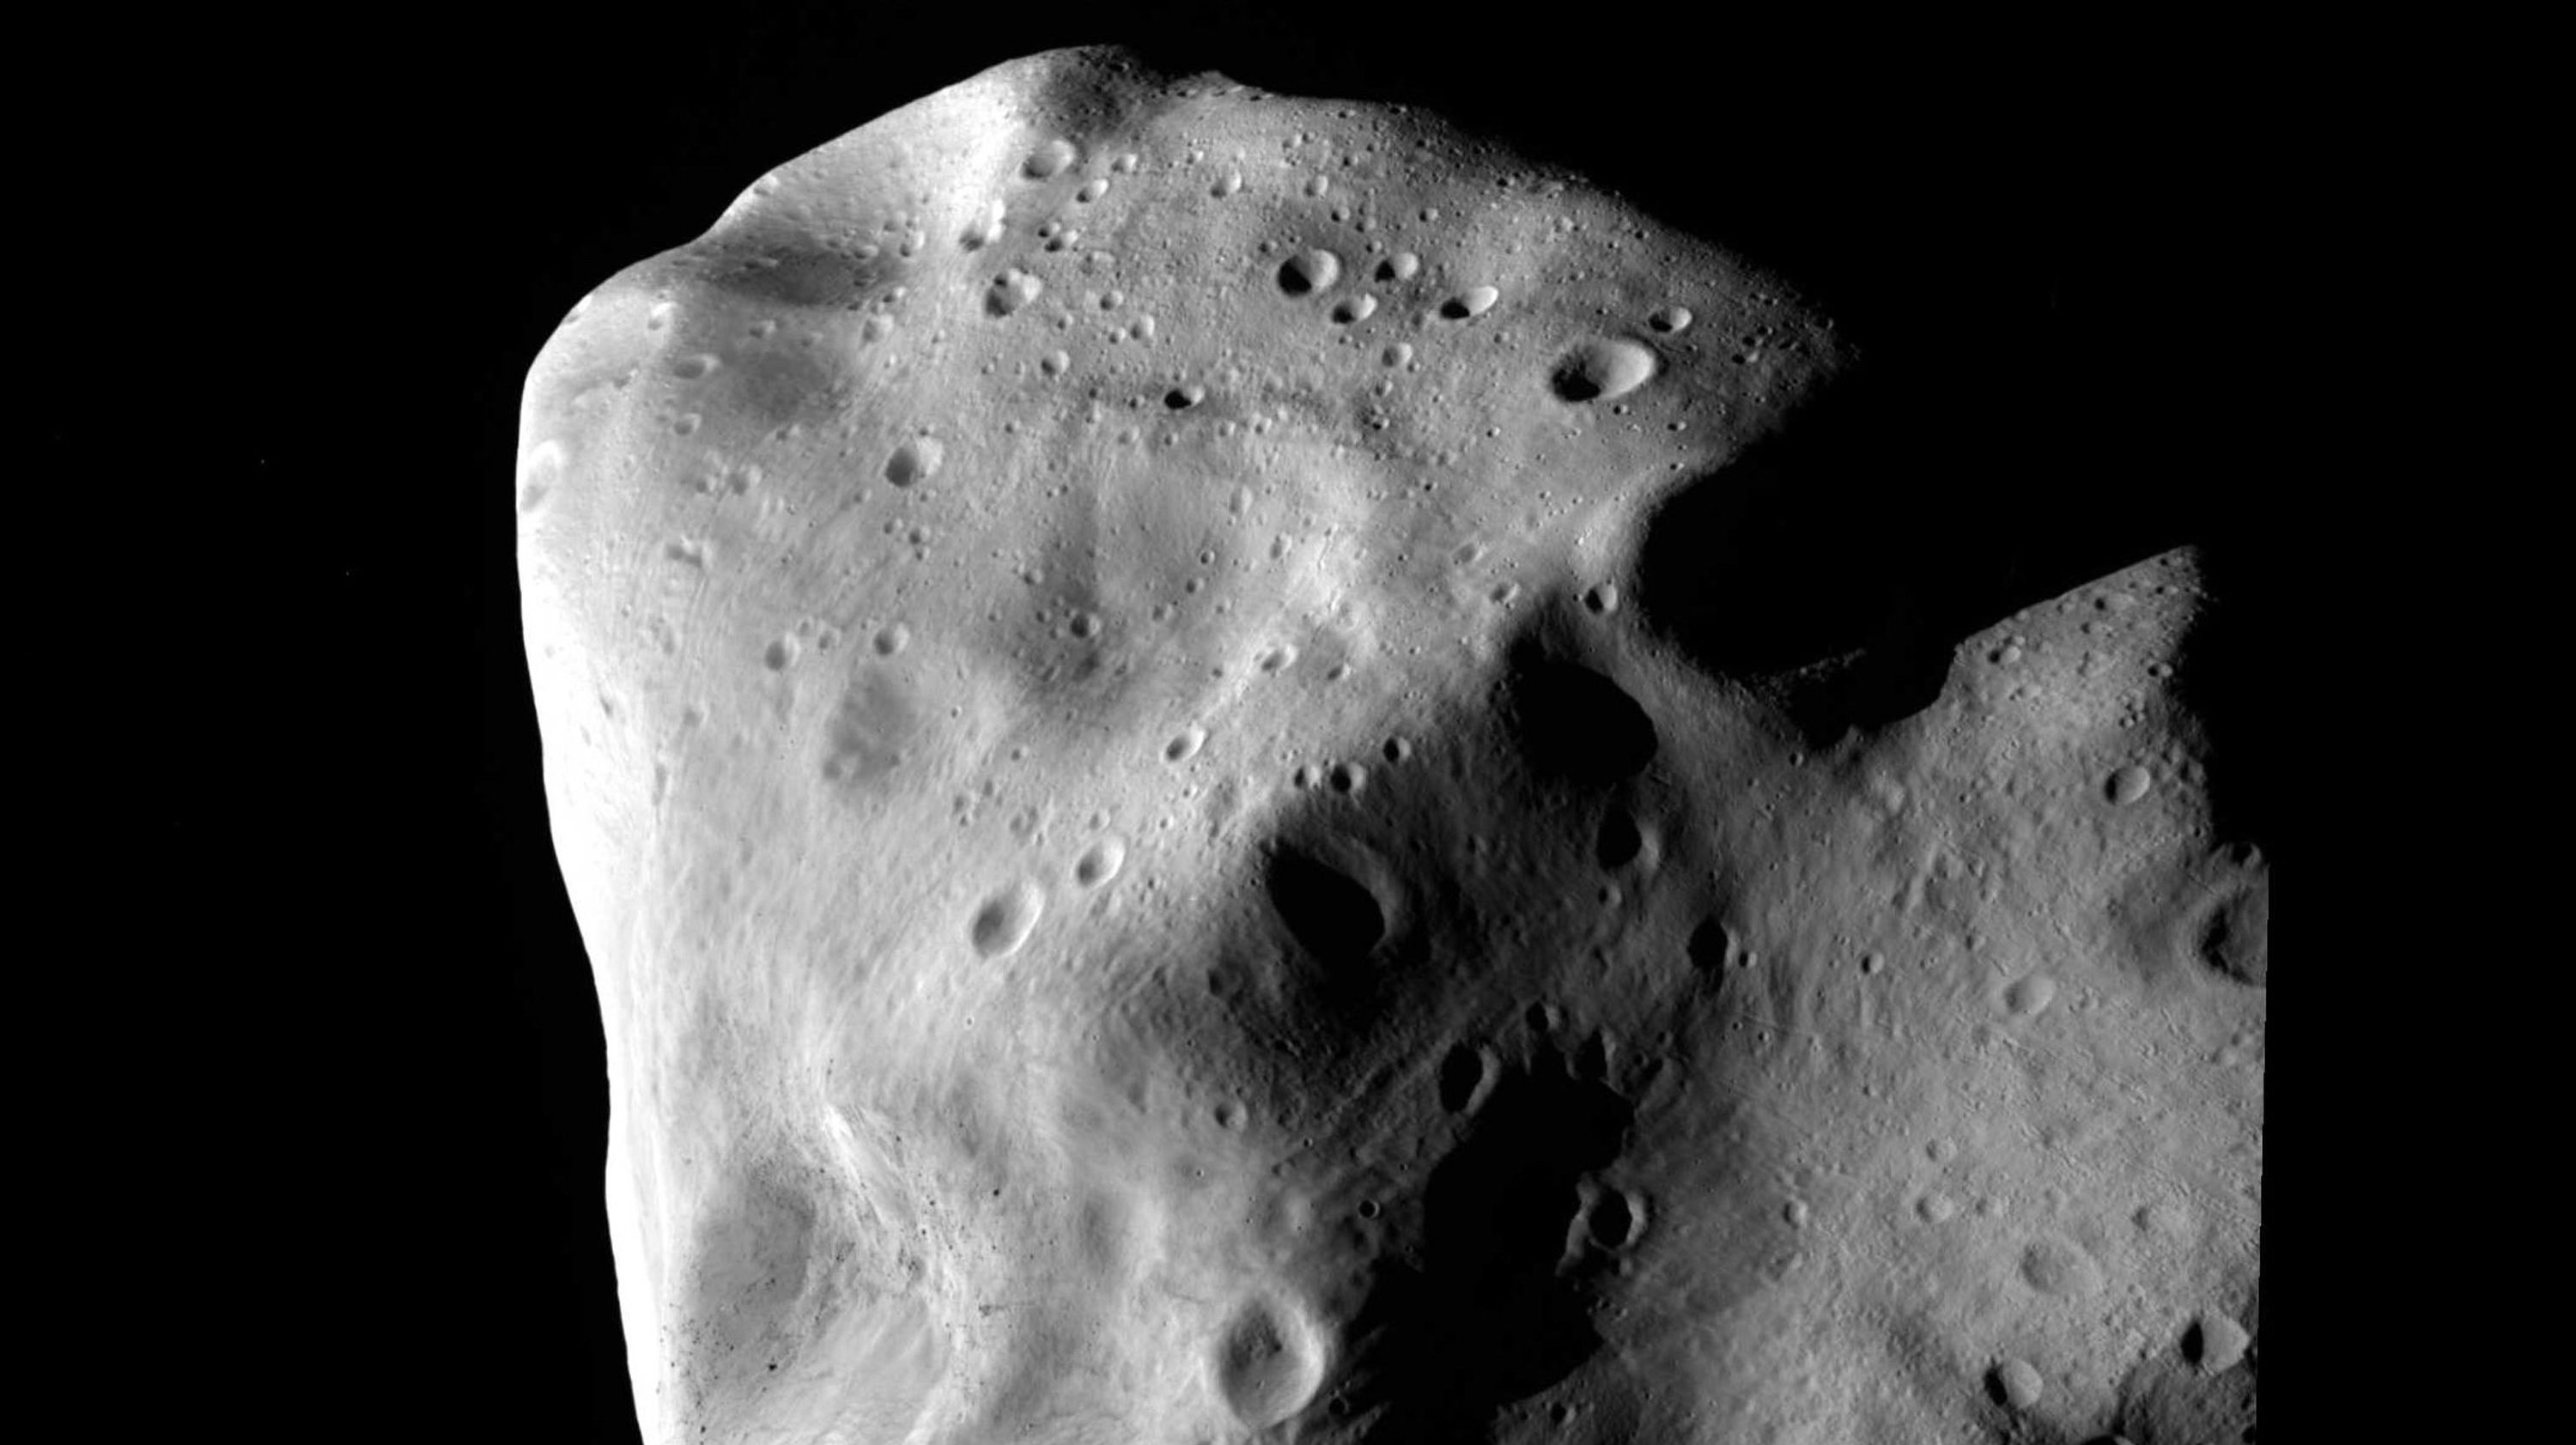 Mark Your Calendars: An Enormous Asteroid Will Fly Past Earth on April 13, 2029